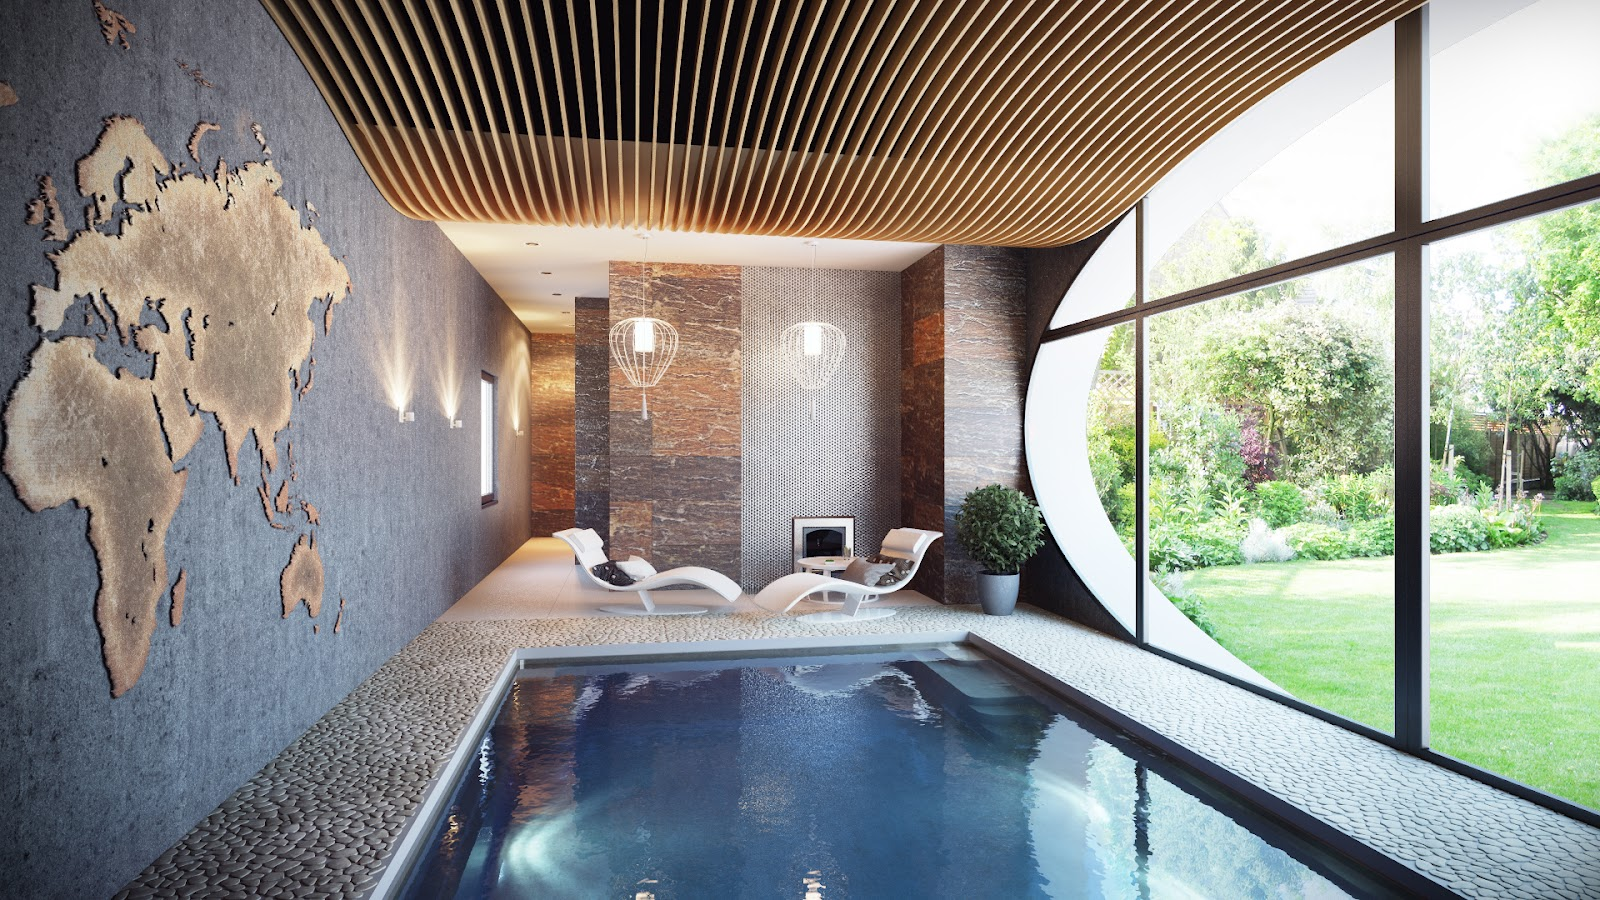 Deco Pool House Best Inspiring Indoor Swimming Pool Design Ideas Desainideas